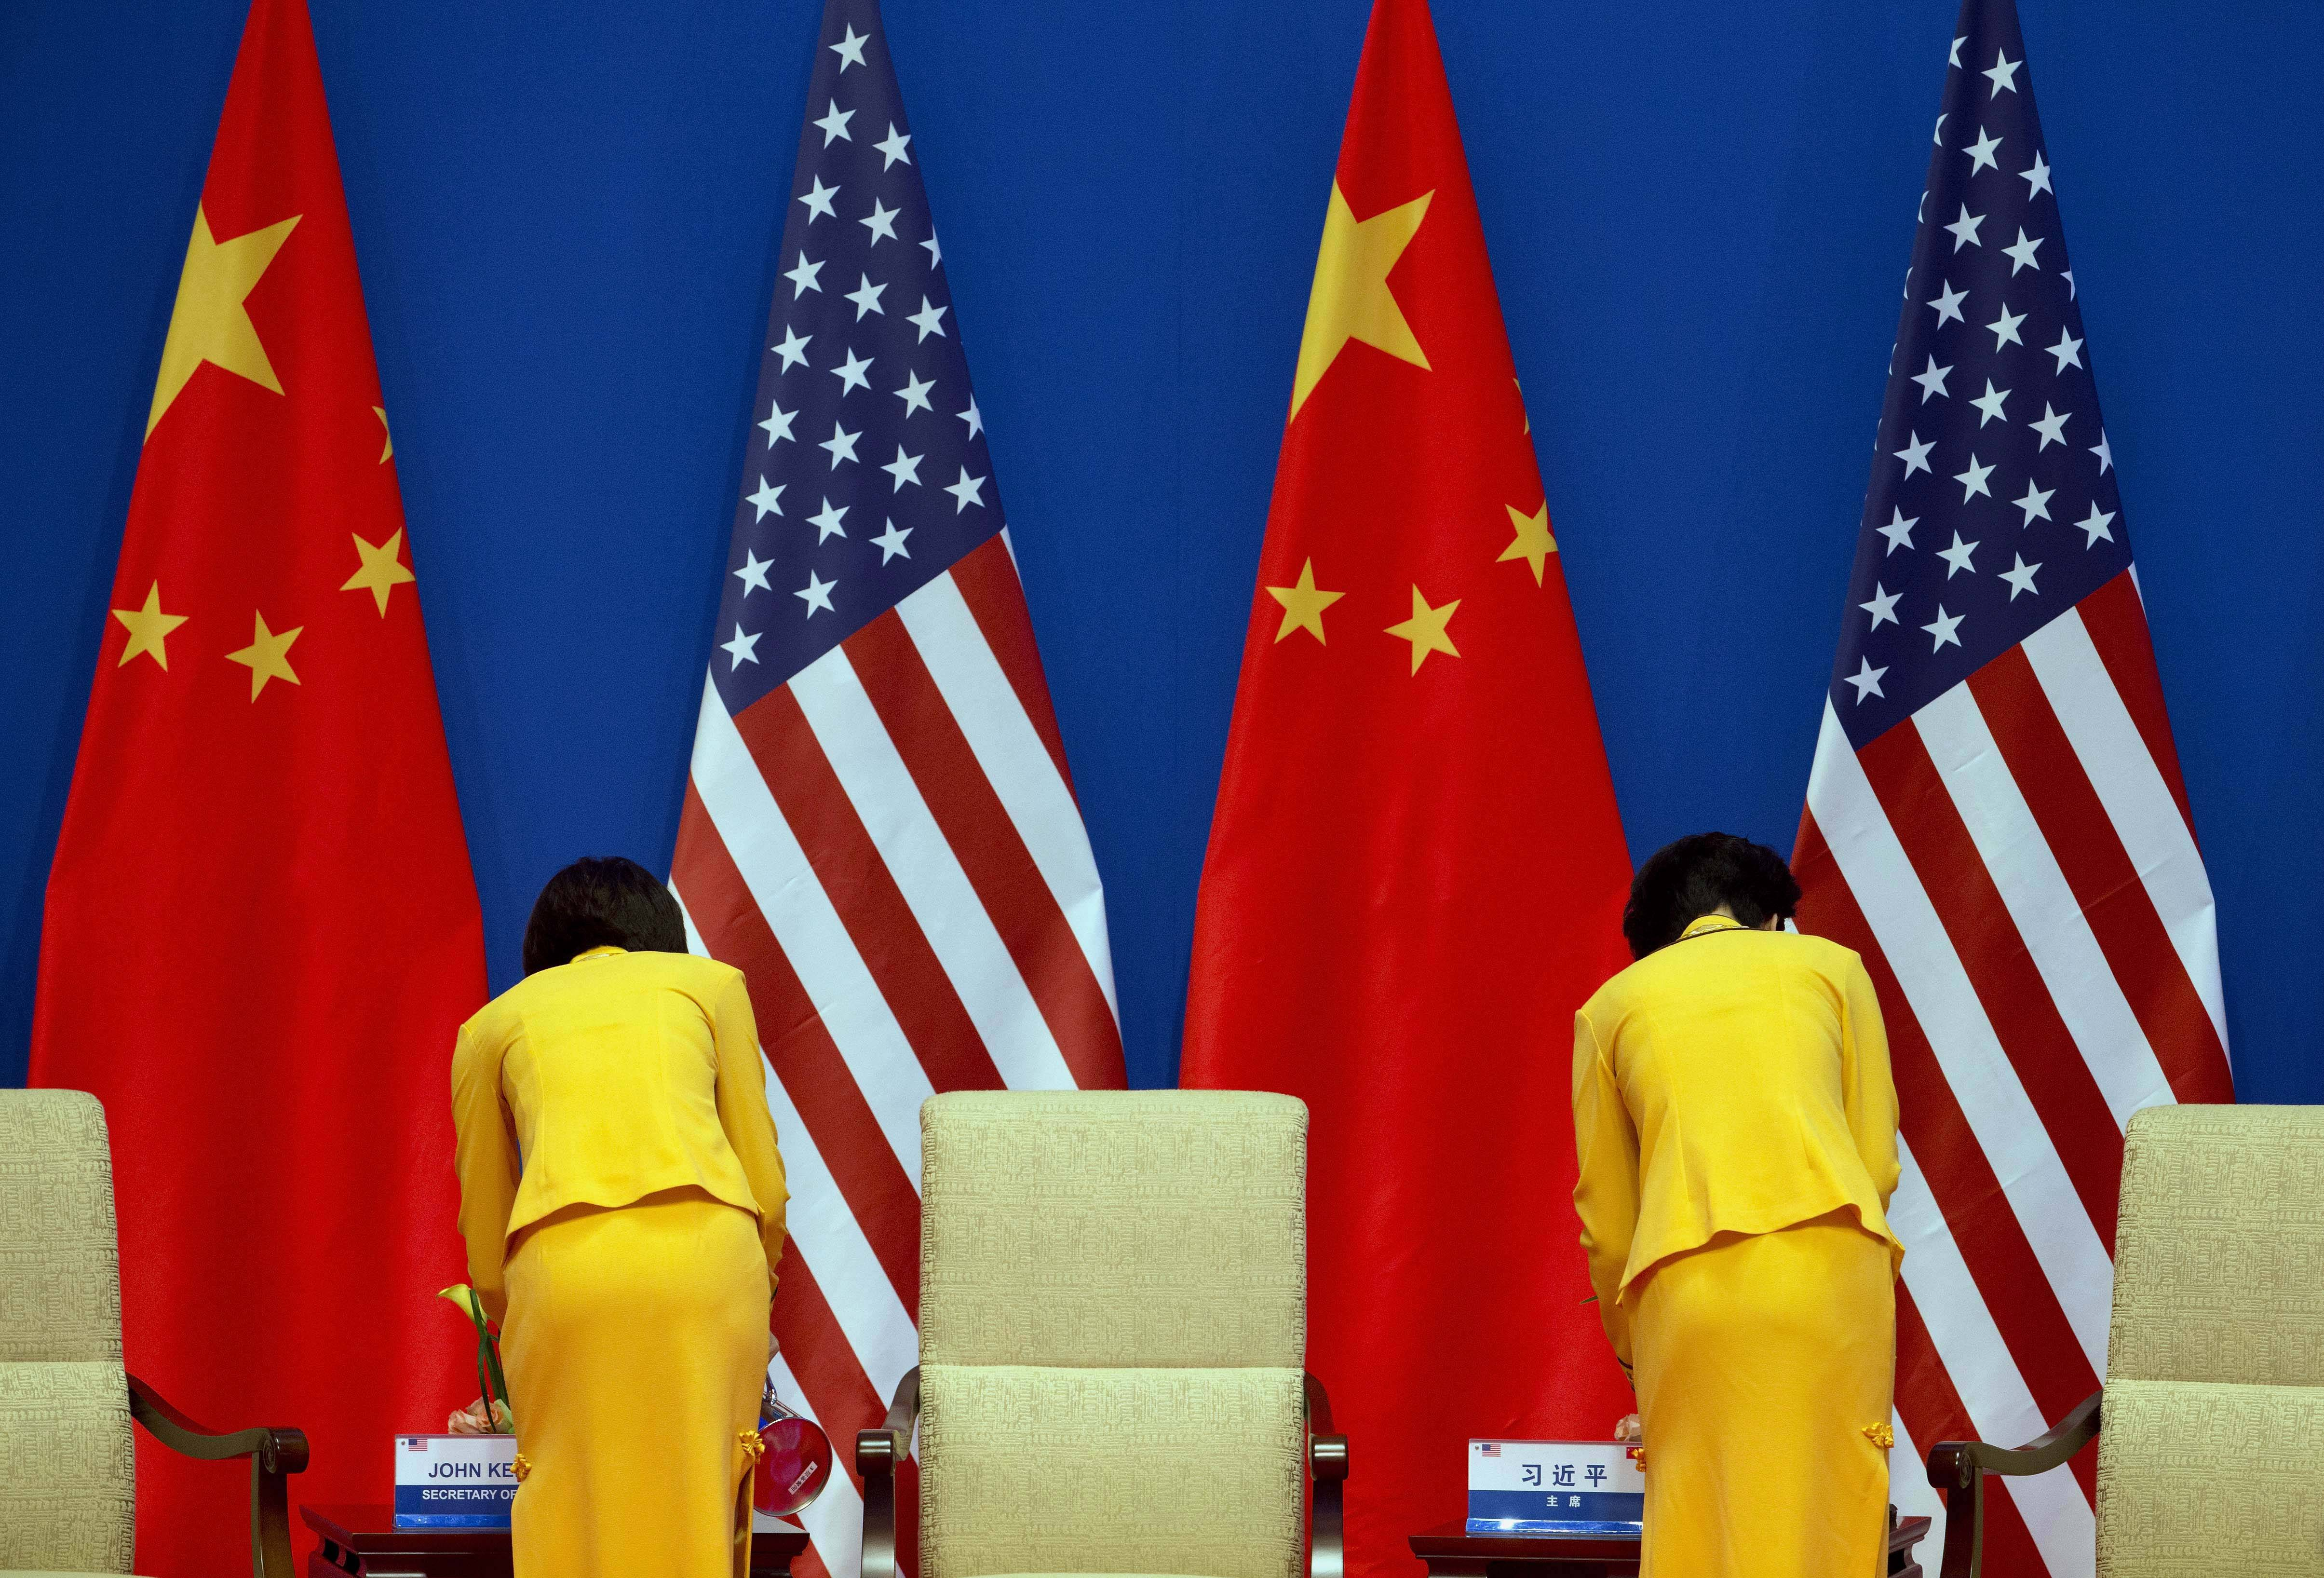 Chinese hostesses prepare tea for U.S. Secretary of State John Kerry and Chinese President Xi Jinping before the opening ceremony of the sixth U.S.-China. Strategic and Economic Dialogue and the fifth round of the China-U.S. High Level Consultation on People-to-People Exchange.